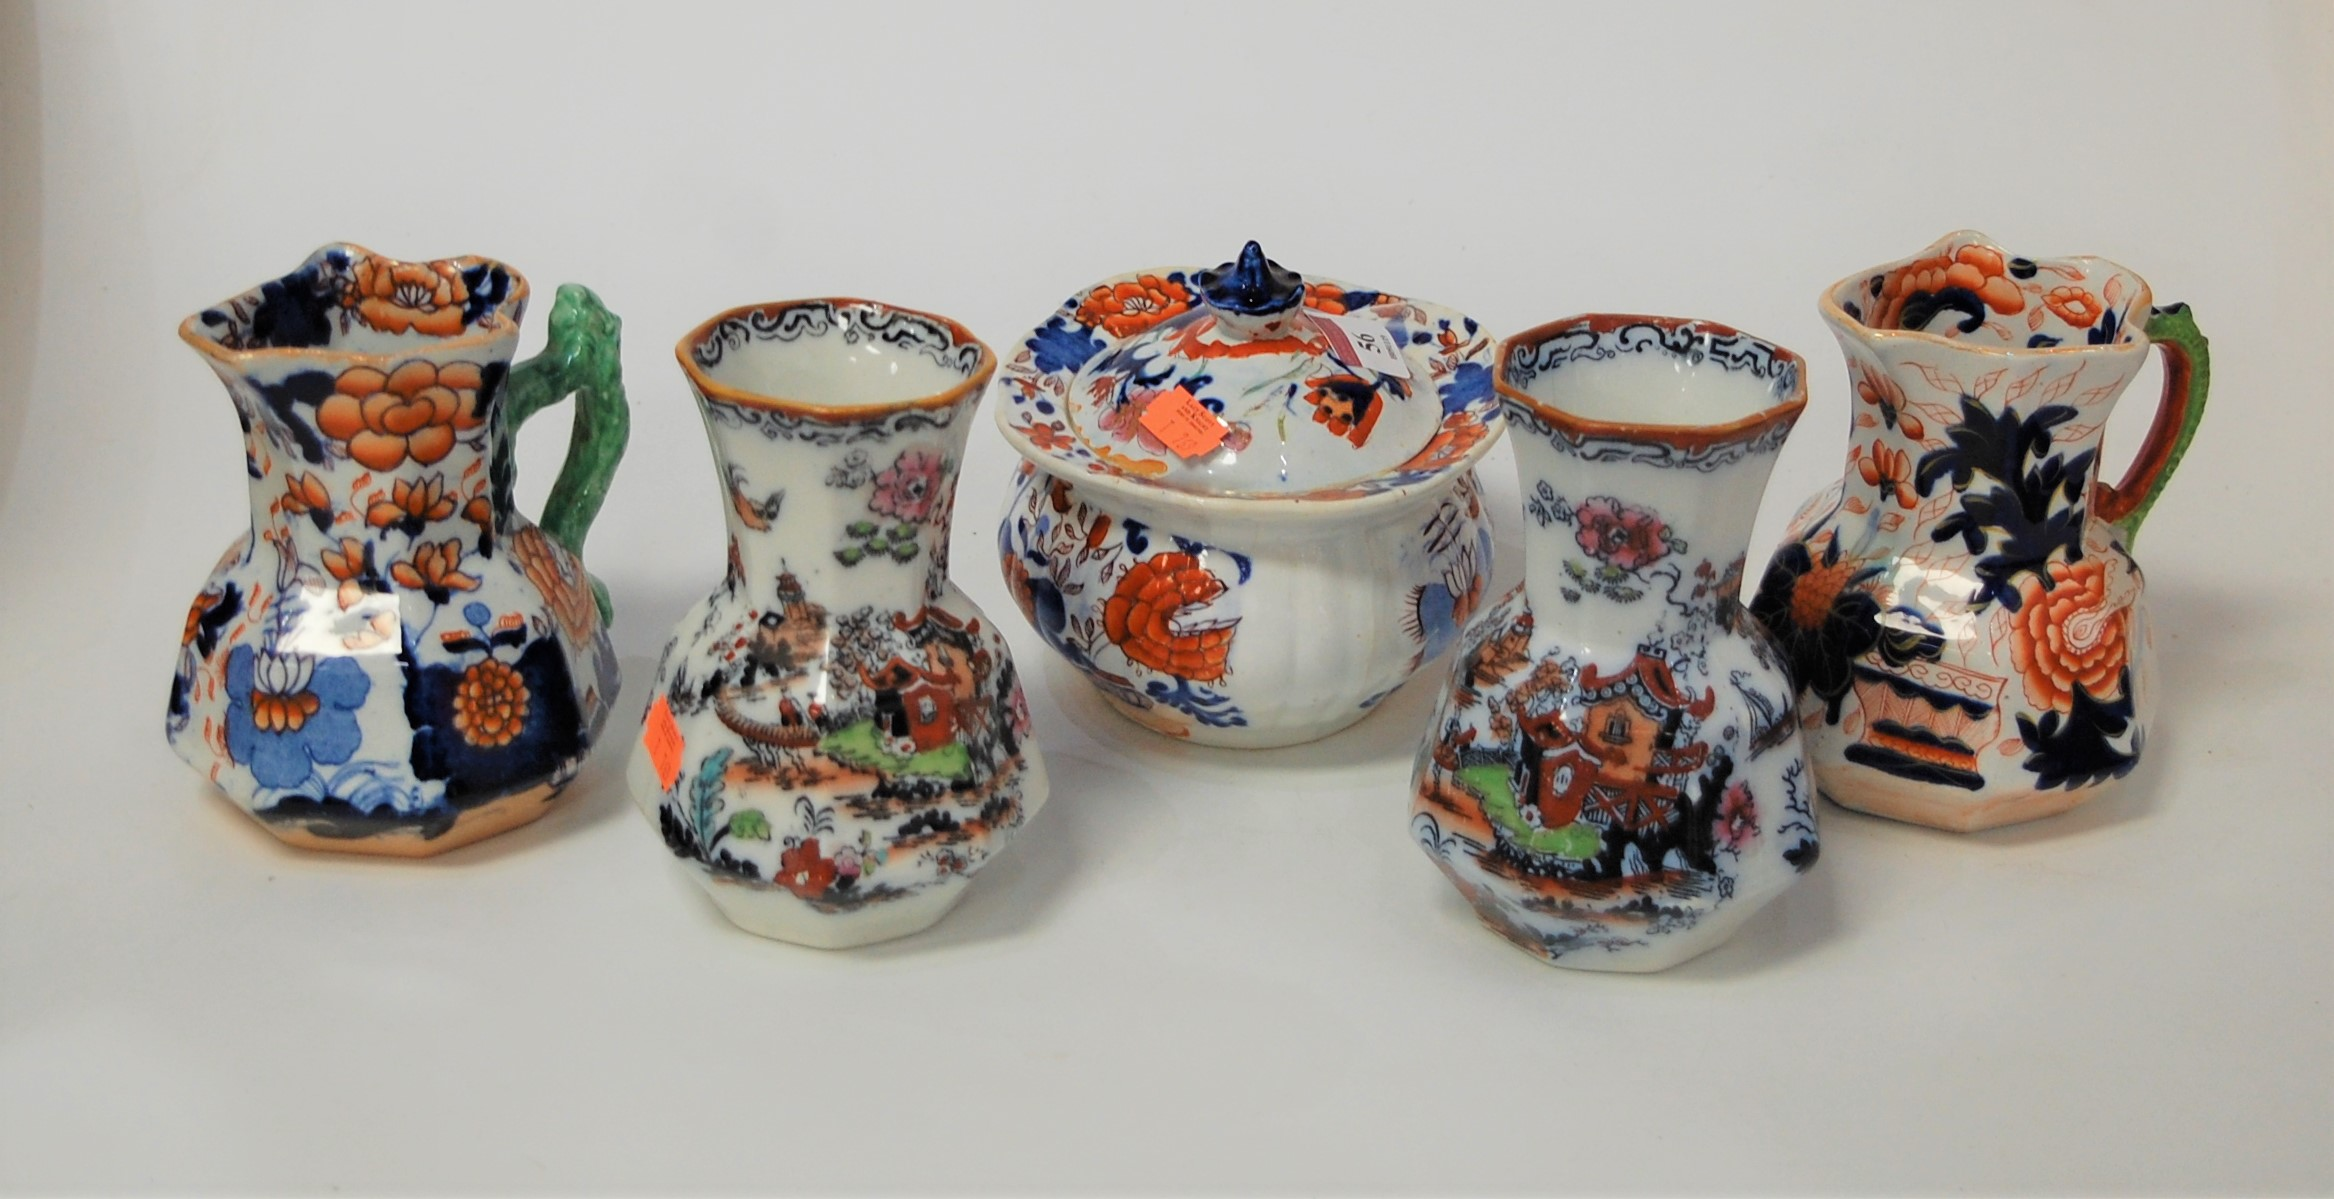 Lot 56 - Two Victorian Mason's ironstone hydra jugs; together with a pair of Mason's ironstone vases; and a